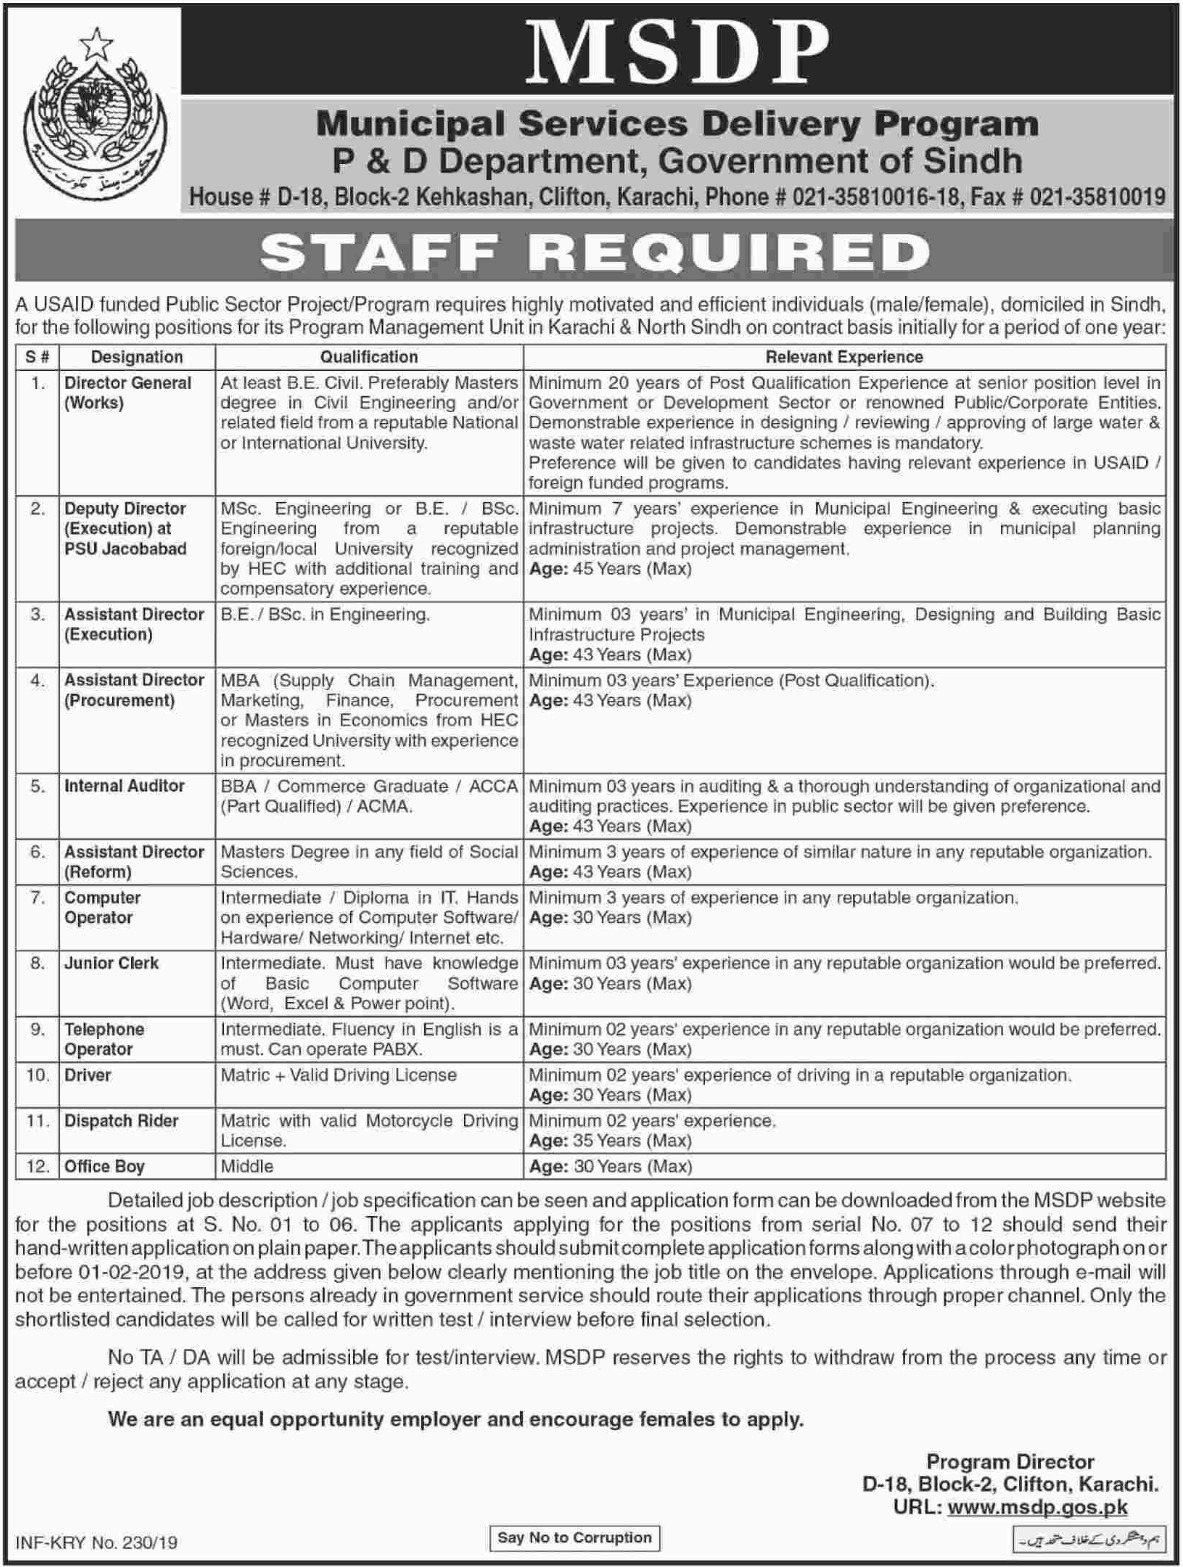 MSDP P&D Department Jobs 2019 Government of Sindh